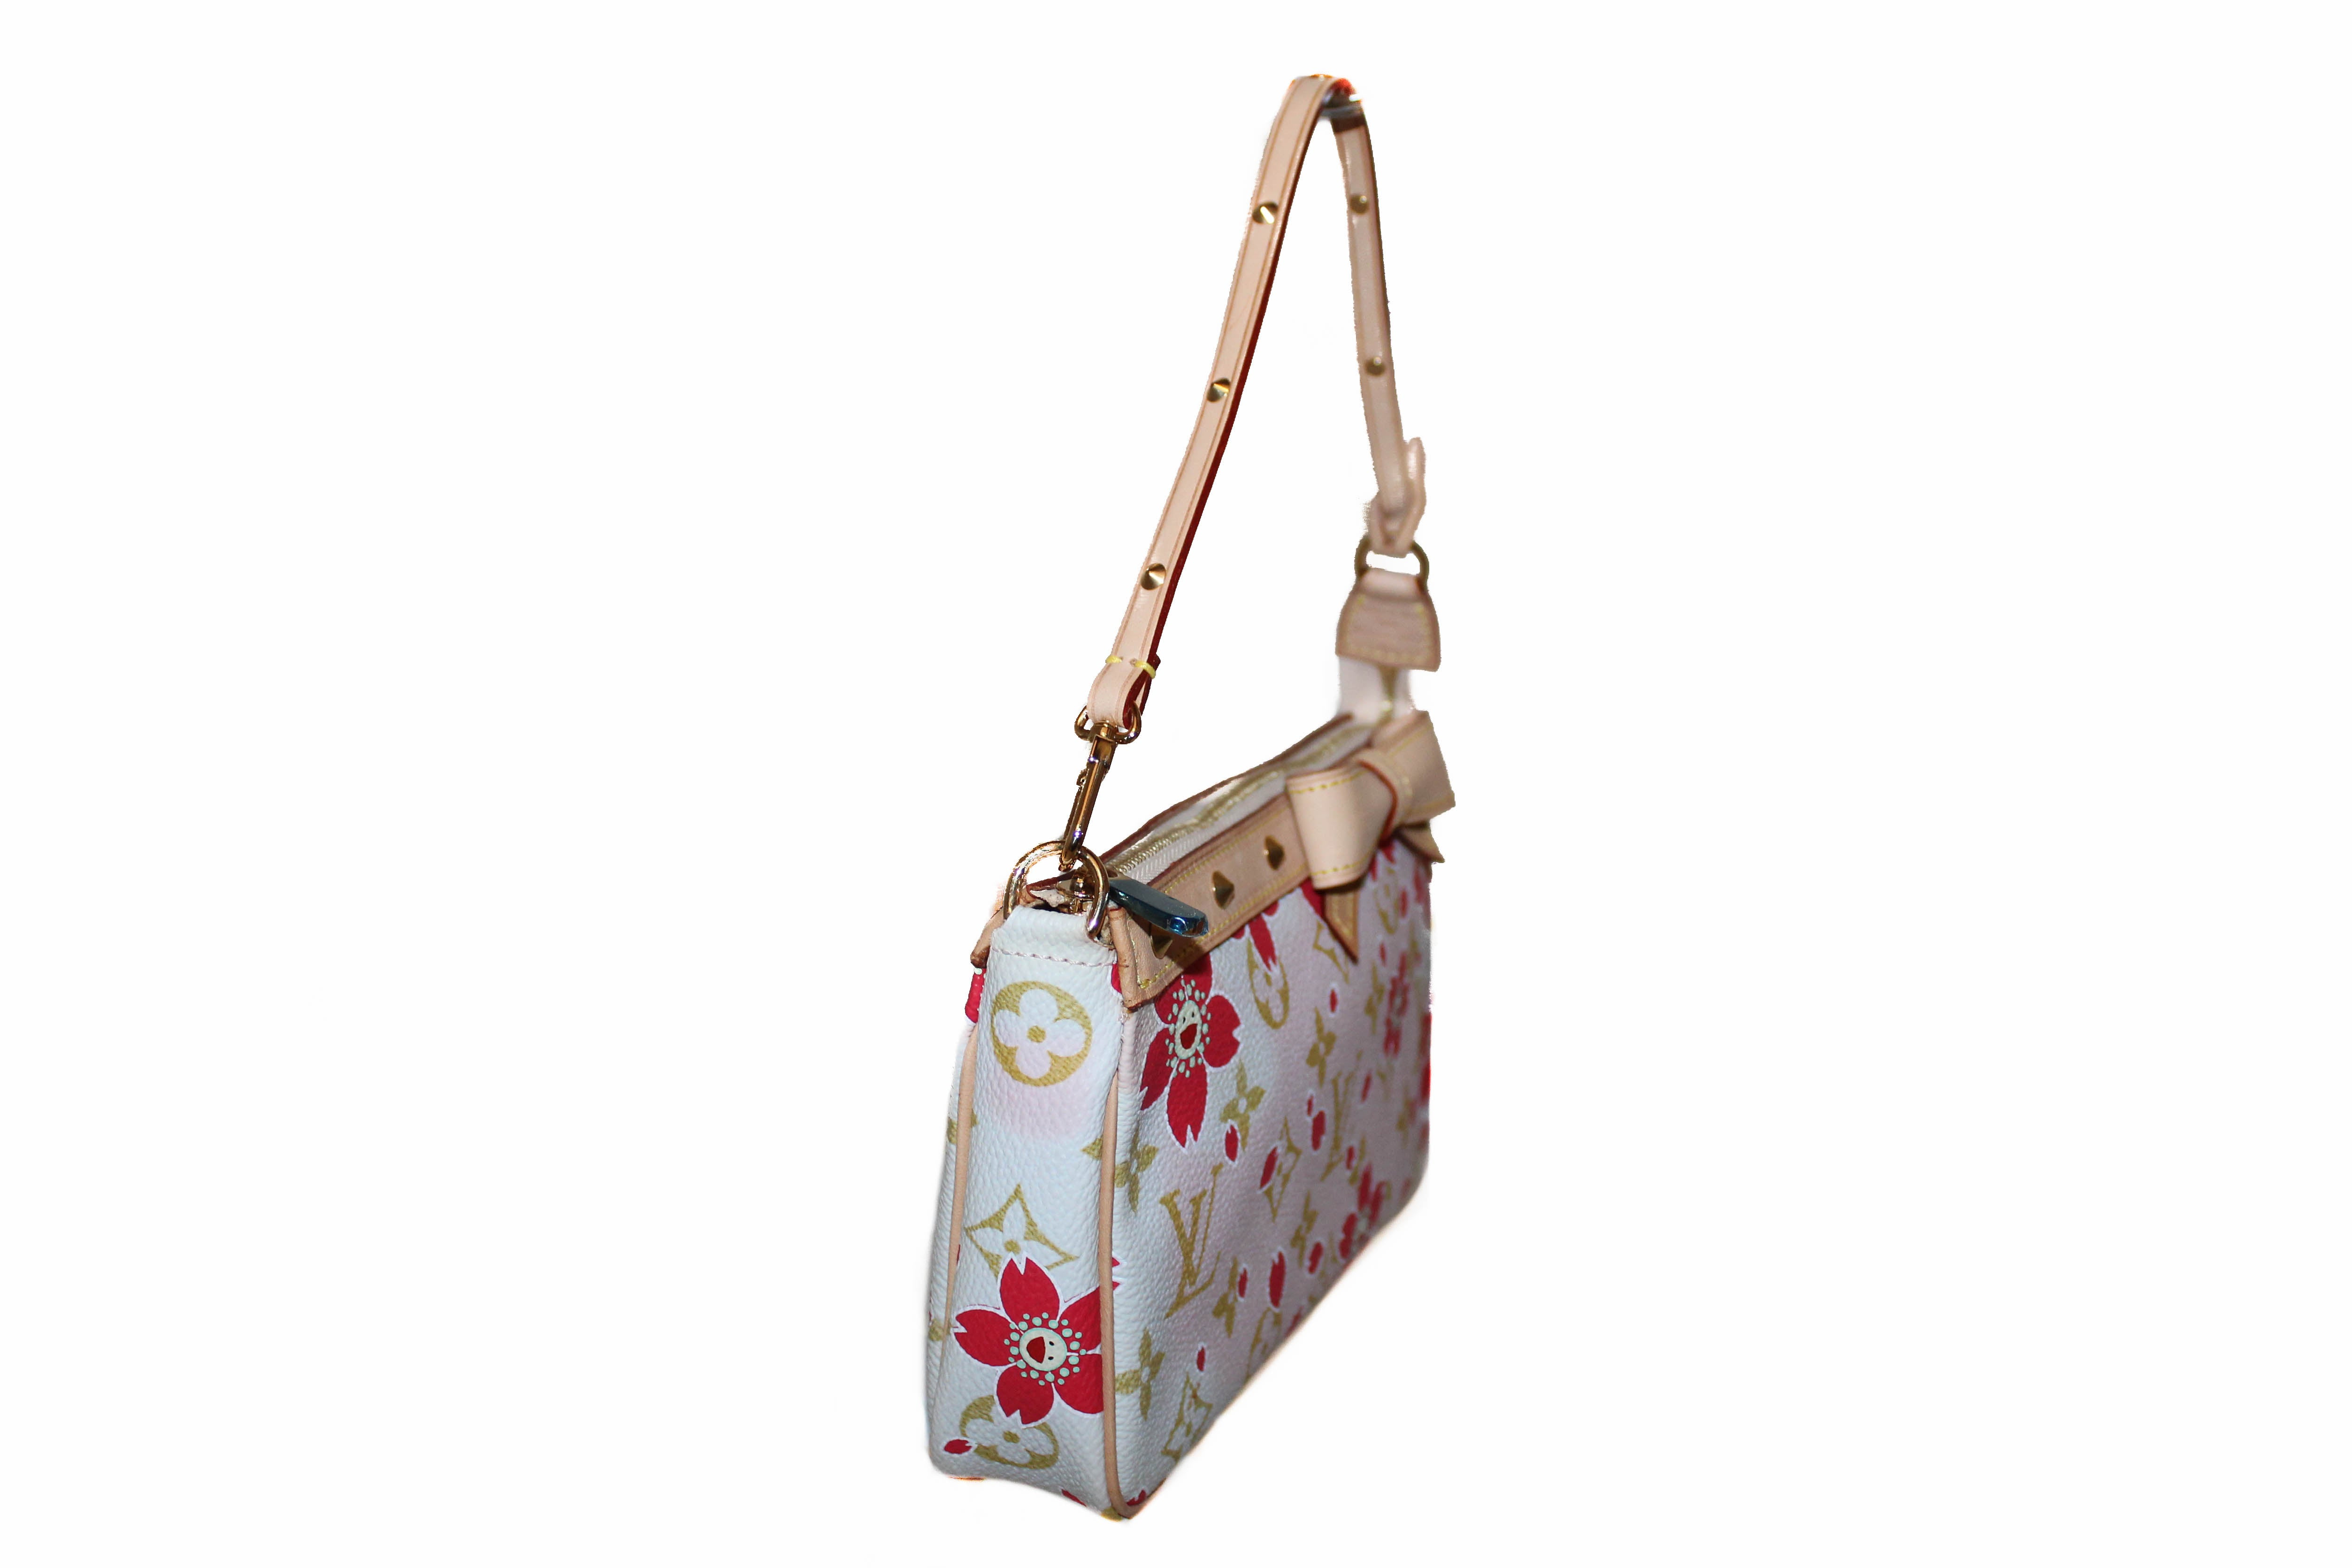 Authentic New Louis Vuitton Cherry Blossom Pochette Pouch Shoulder Bag